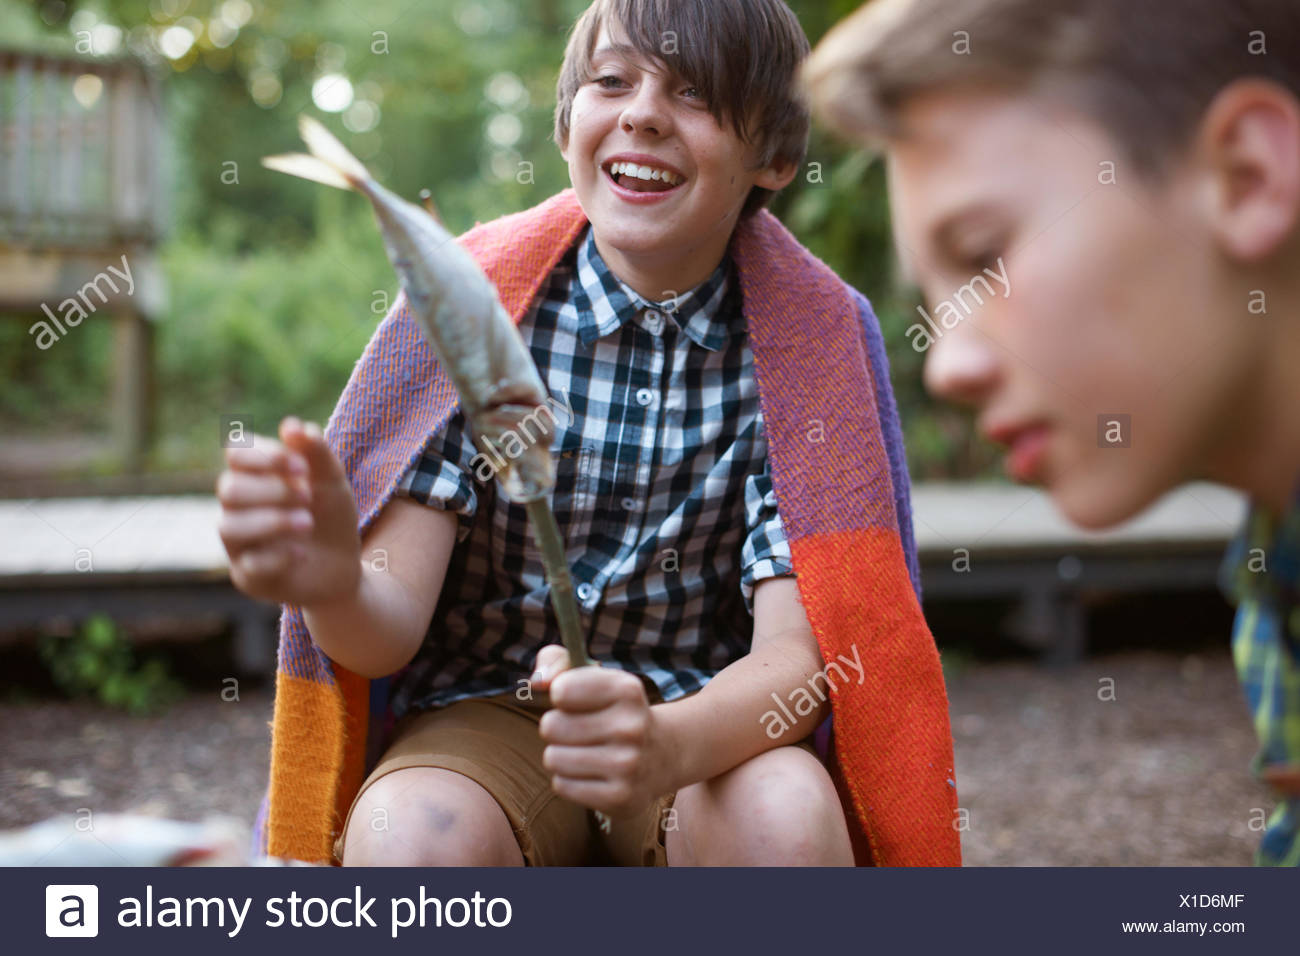 Young boy holding stick with fish on ready to barbecue Stock Photo